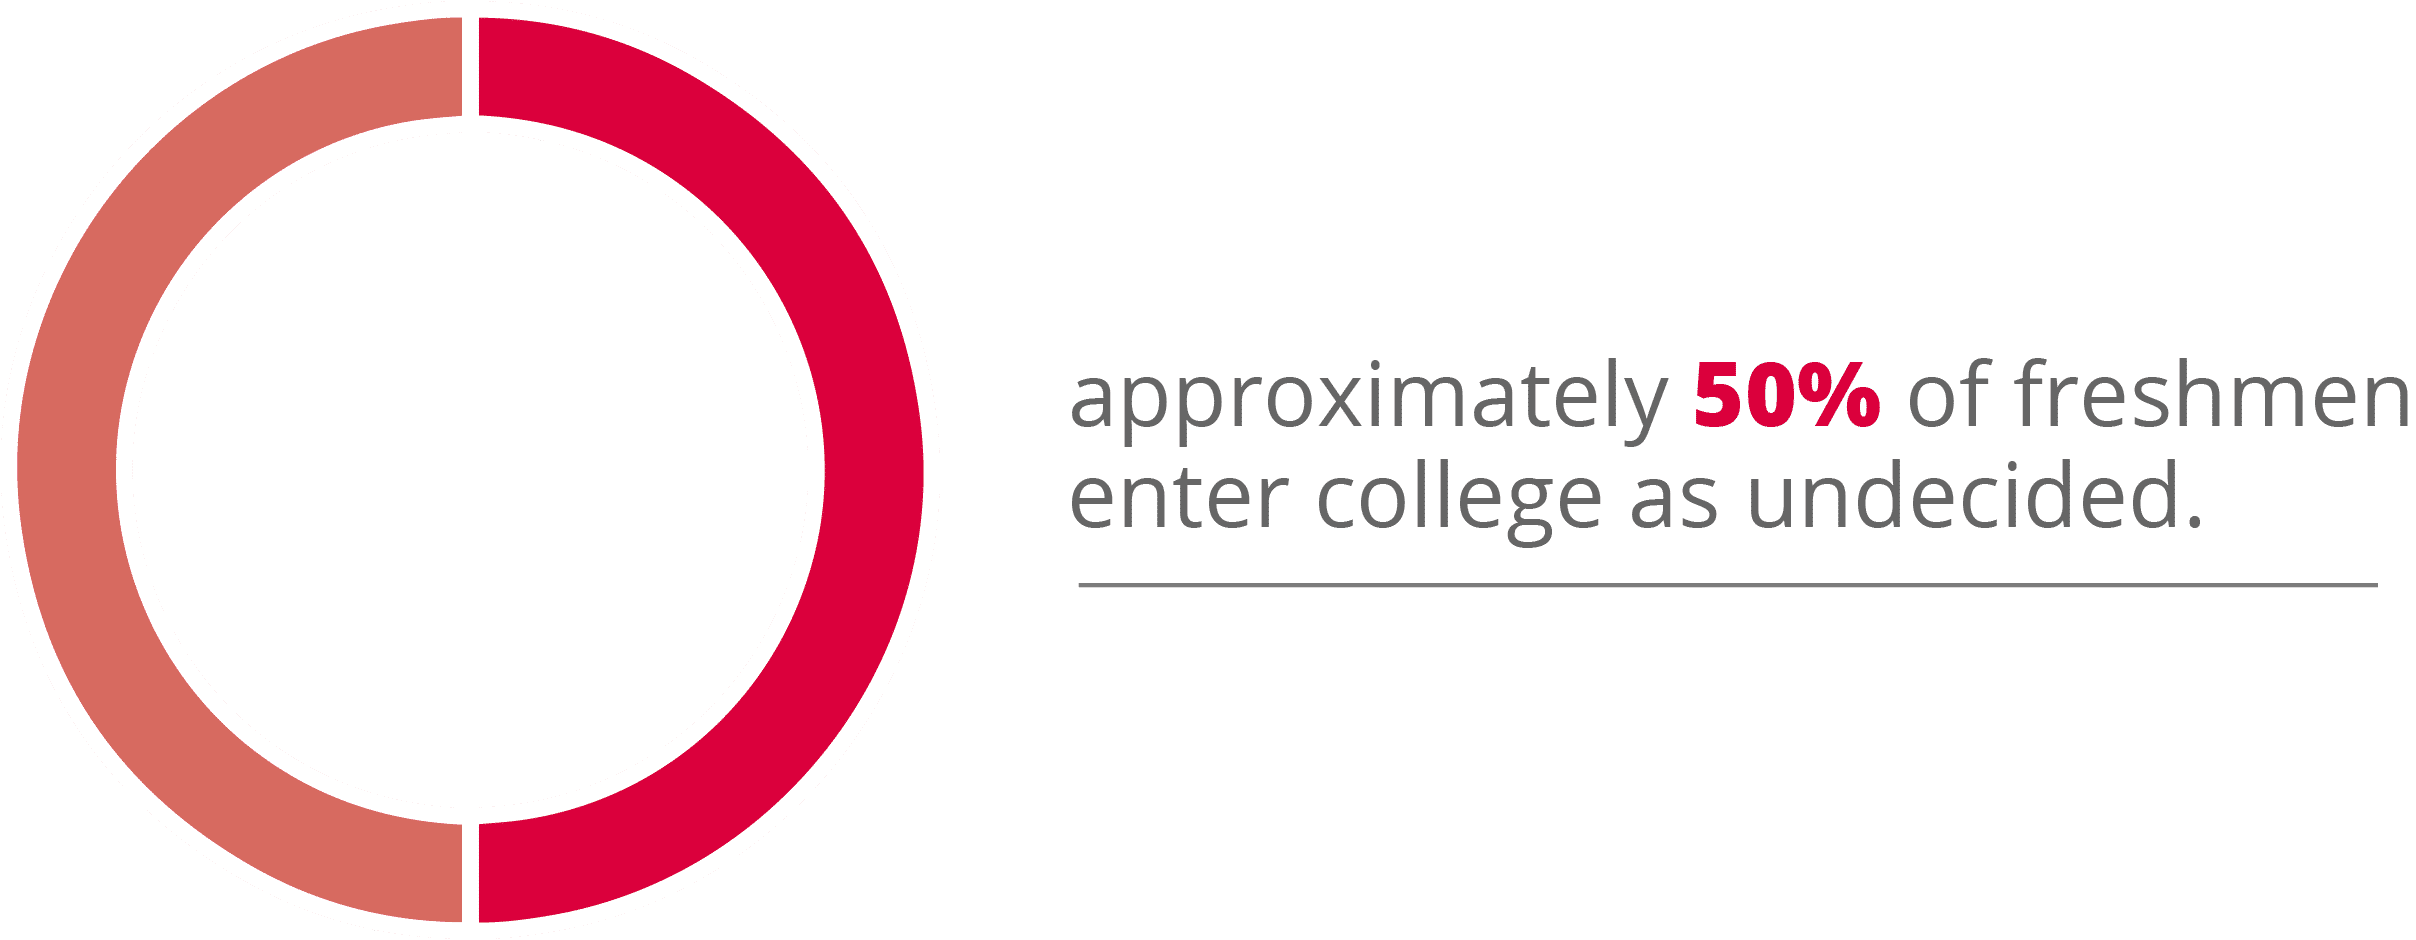 50% of freshmen enter college as undecided